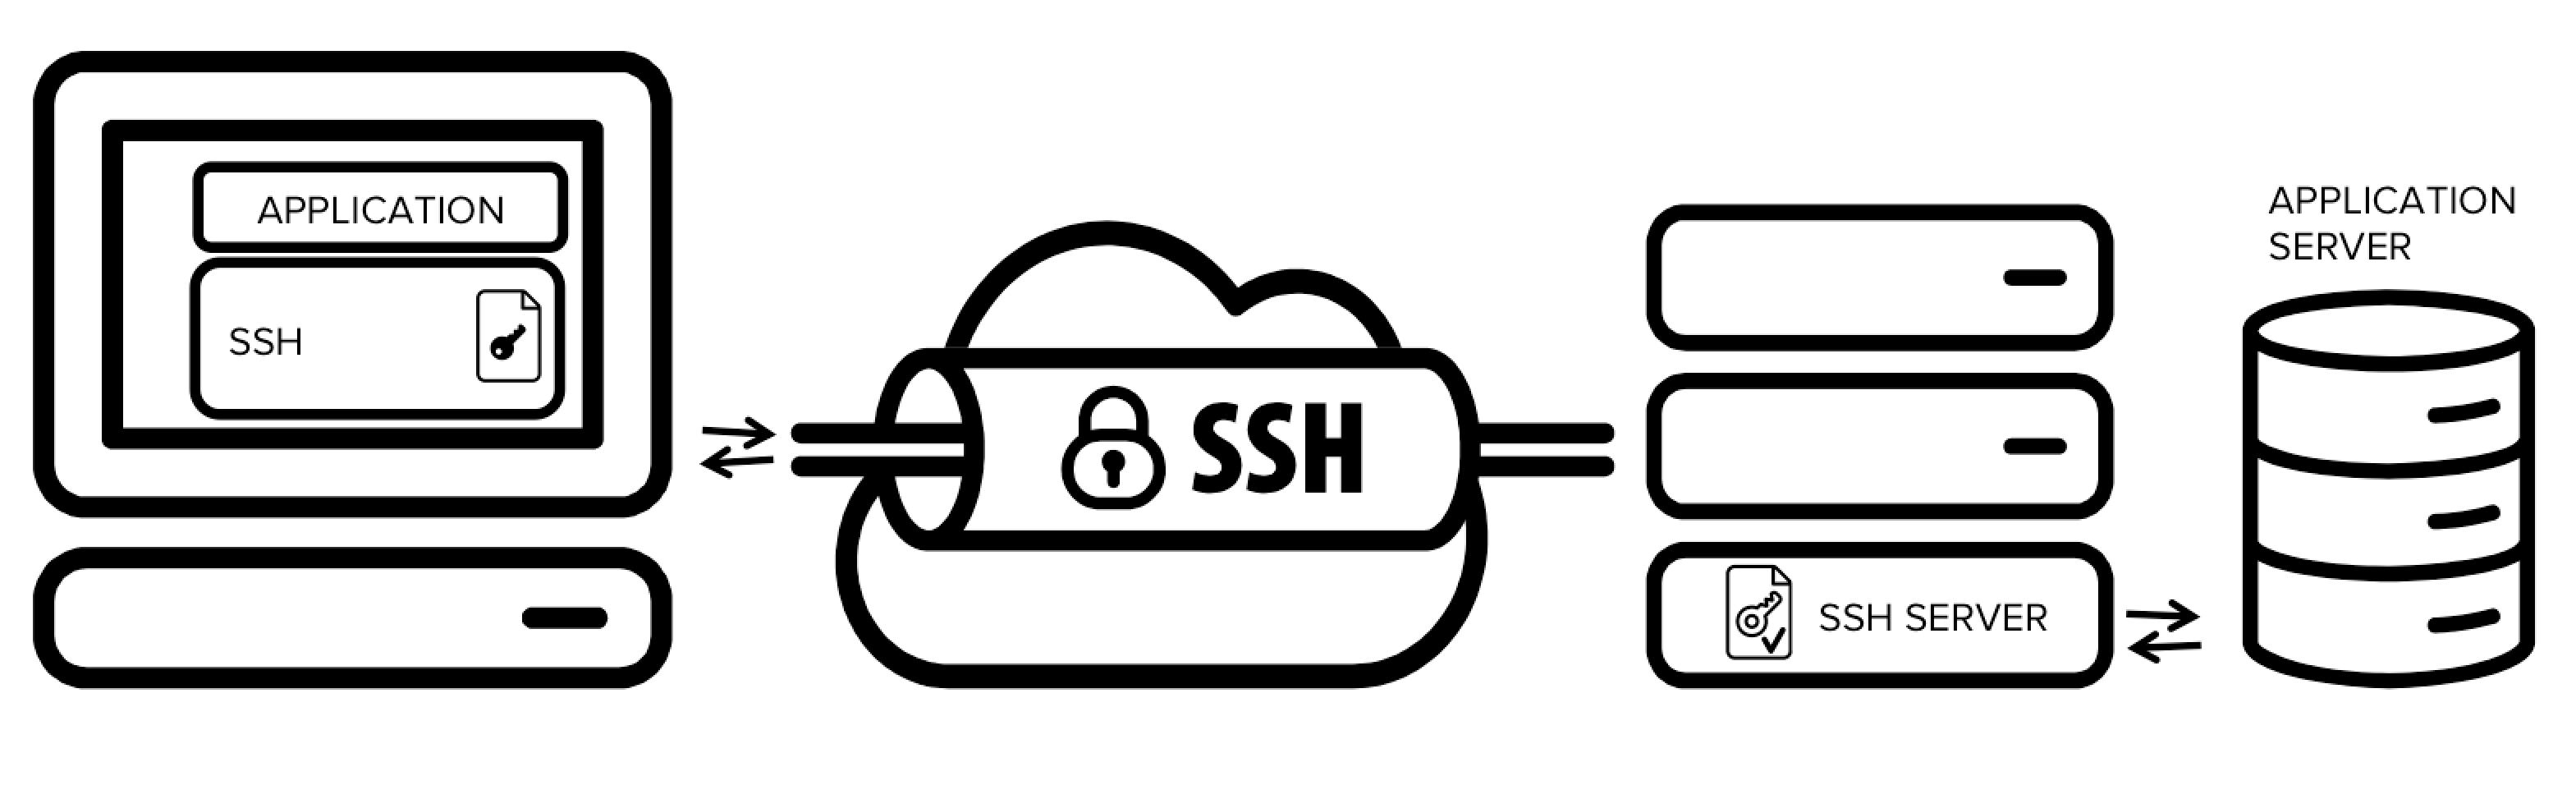 Securing applications with ssh tunneling / port forwarding